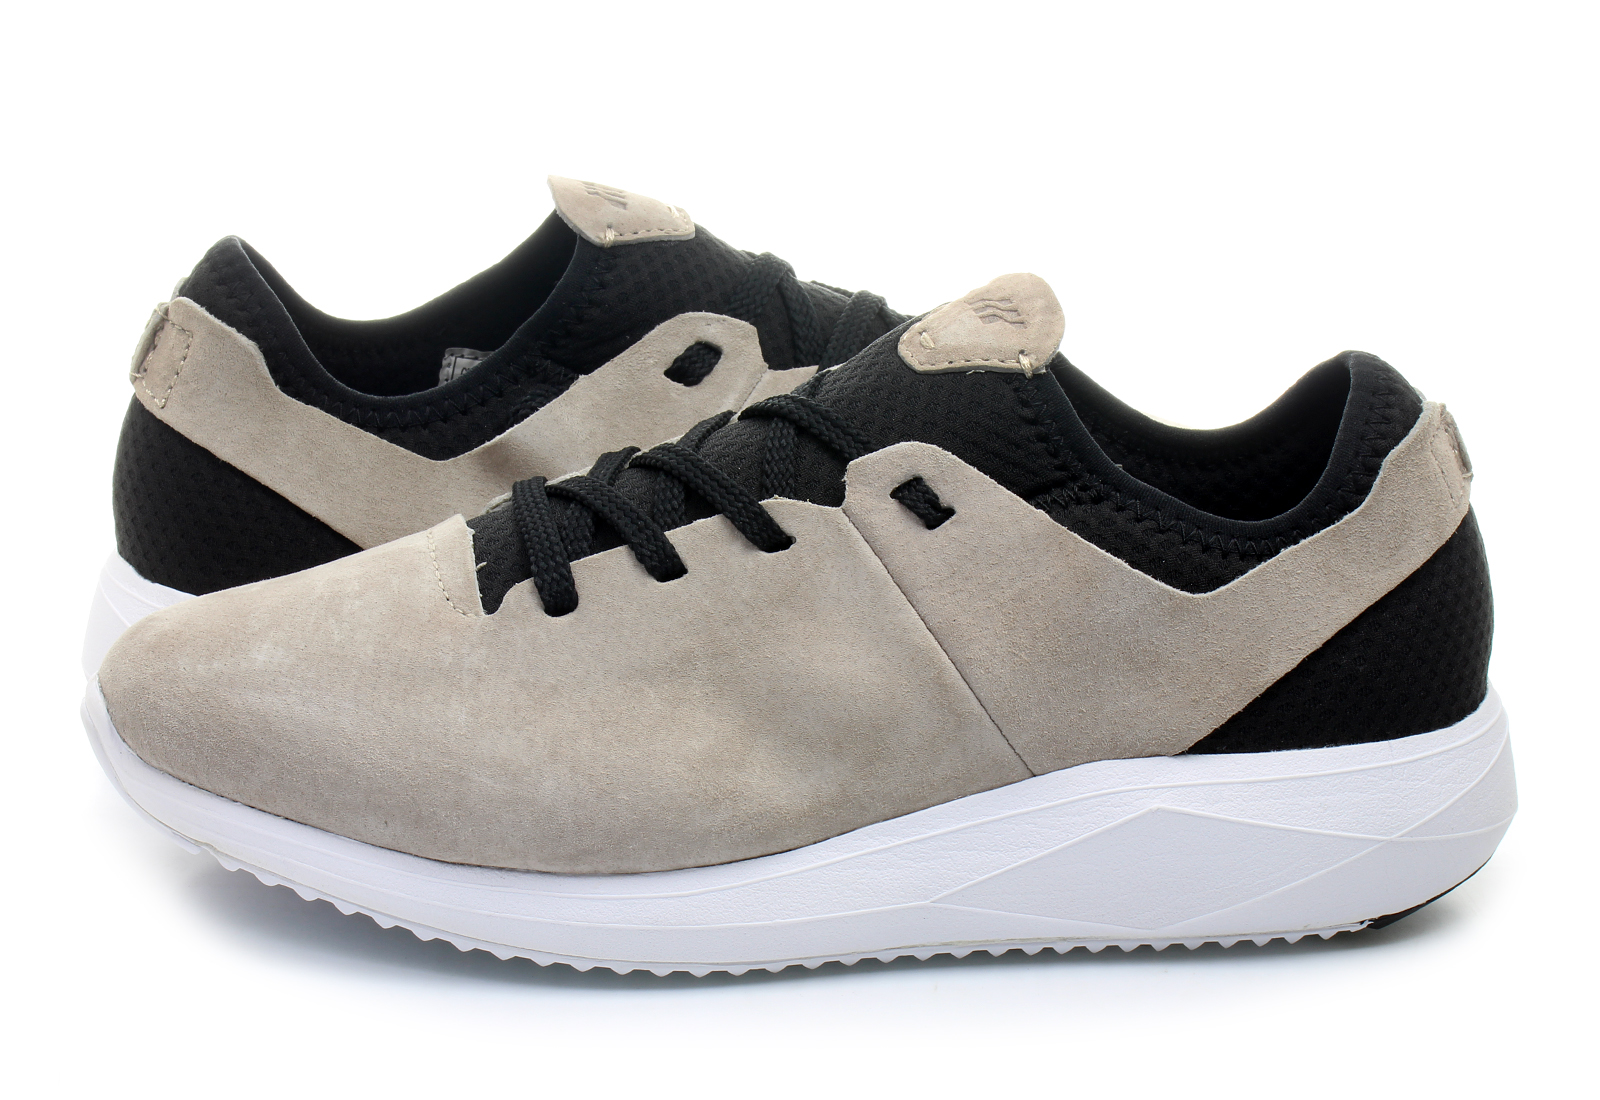 timeless design e2e8a 91343 Boxfresh Shoes - Ceza - E15035-snd - Online shop for sneakers, shoes and  boots